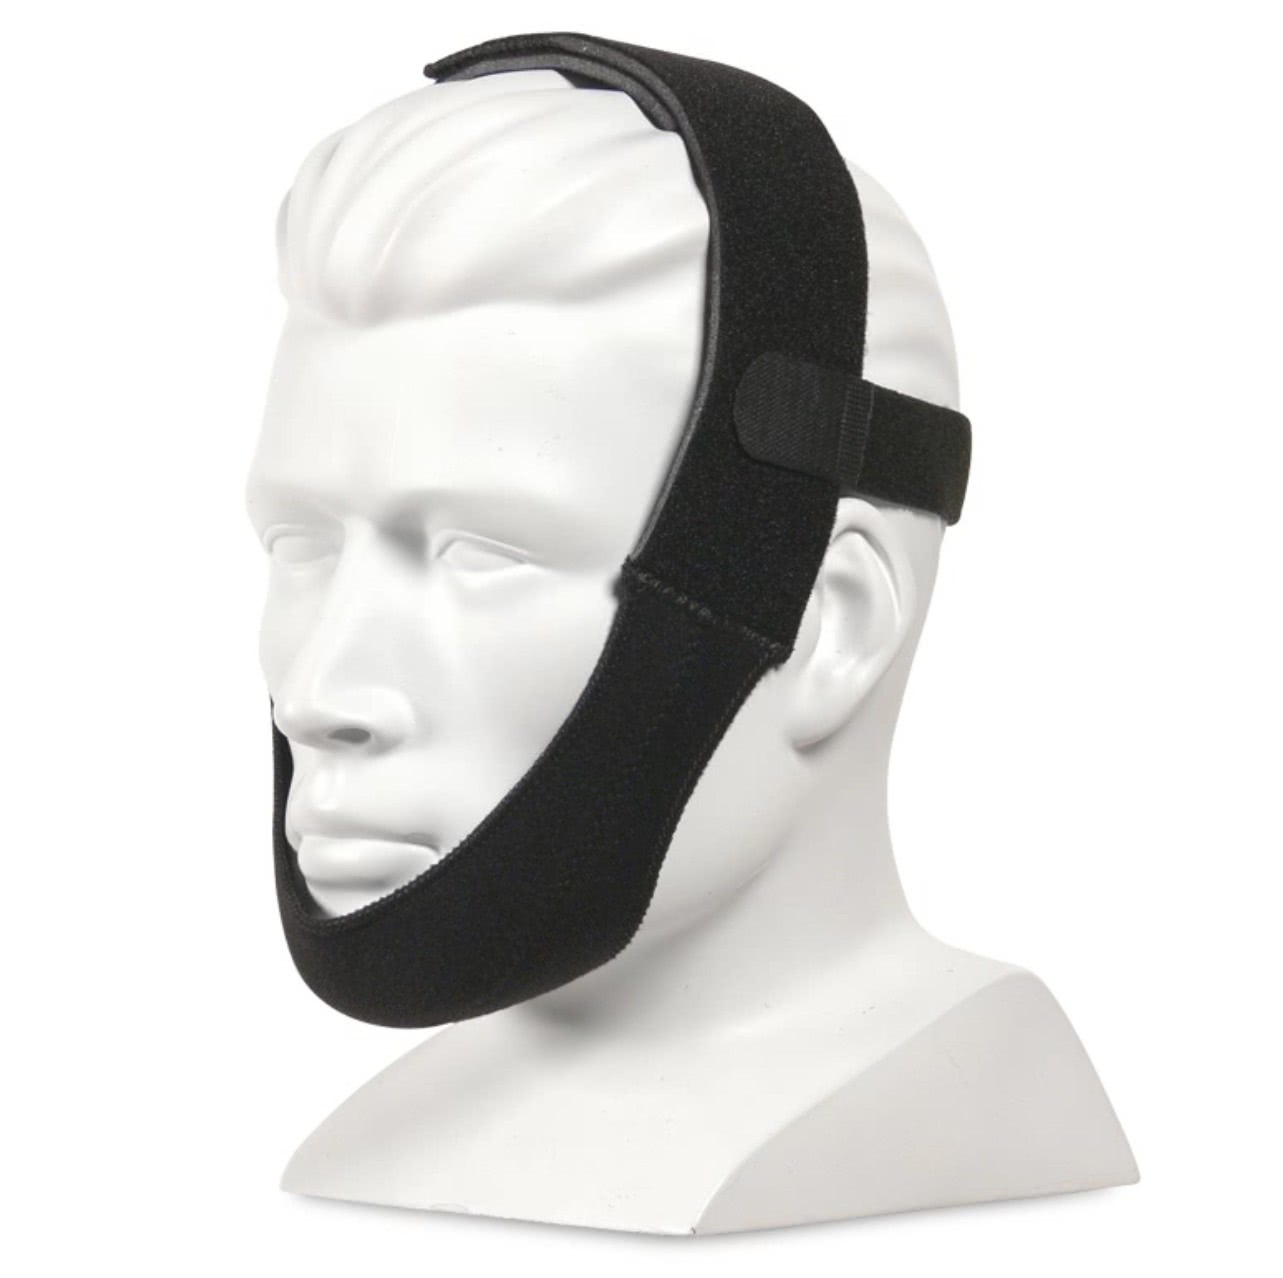 chinstraps to stop CPAP mouth breathers